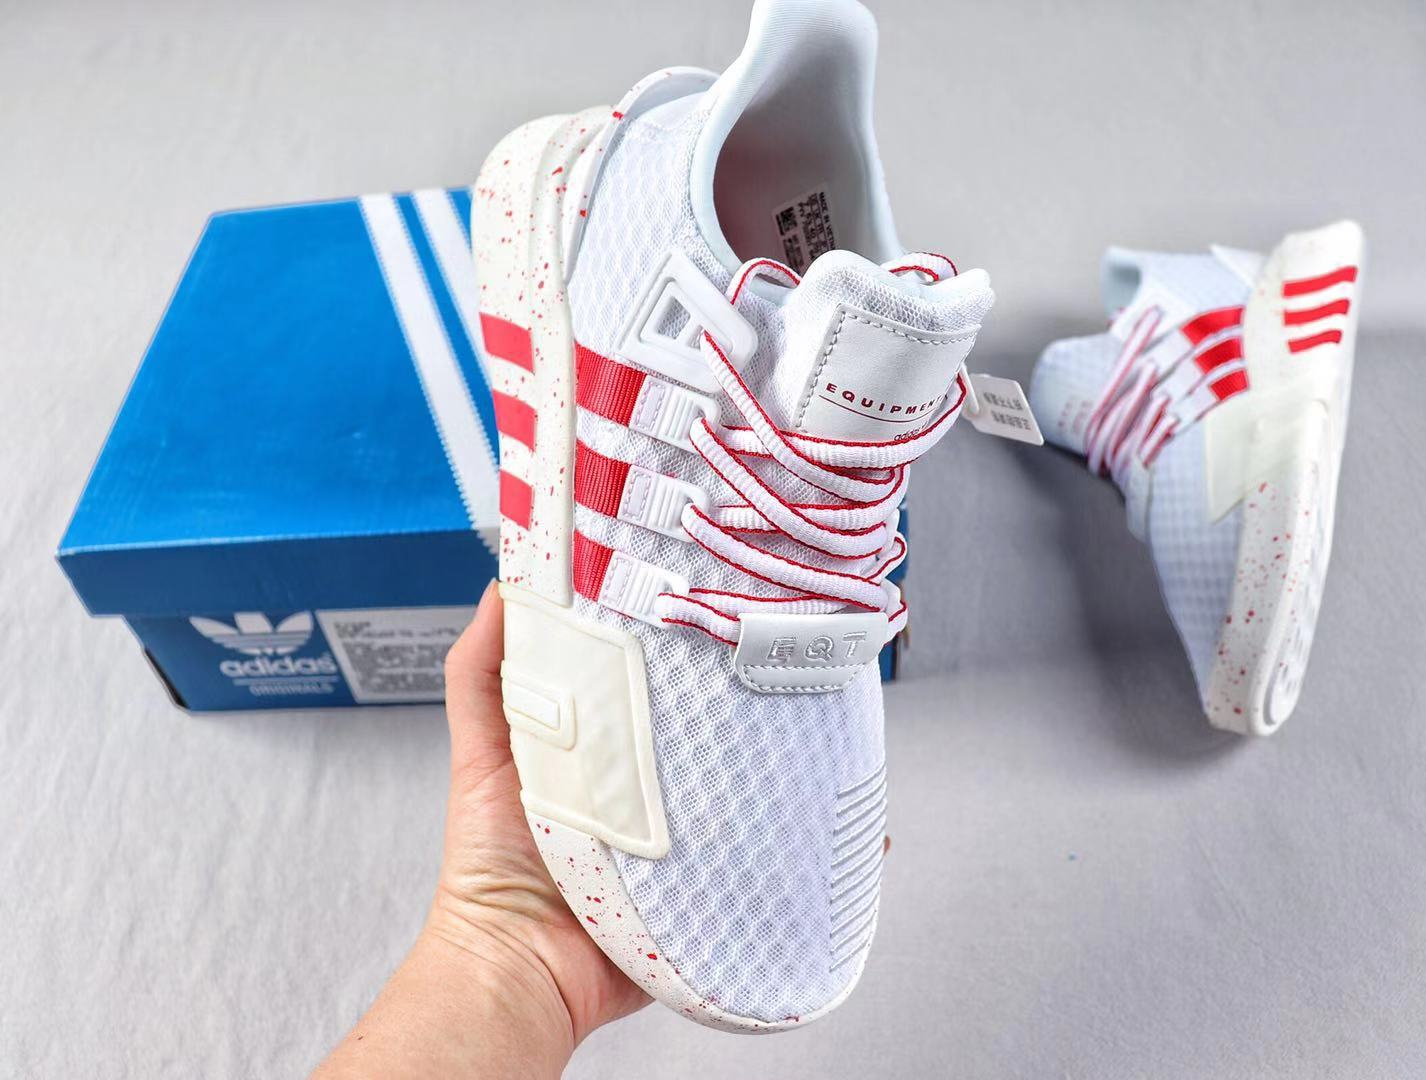 Adidas EQT Basketball ADV Cloud White/Red Casual Trainers Hot Sale BD7885